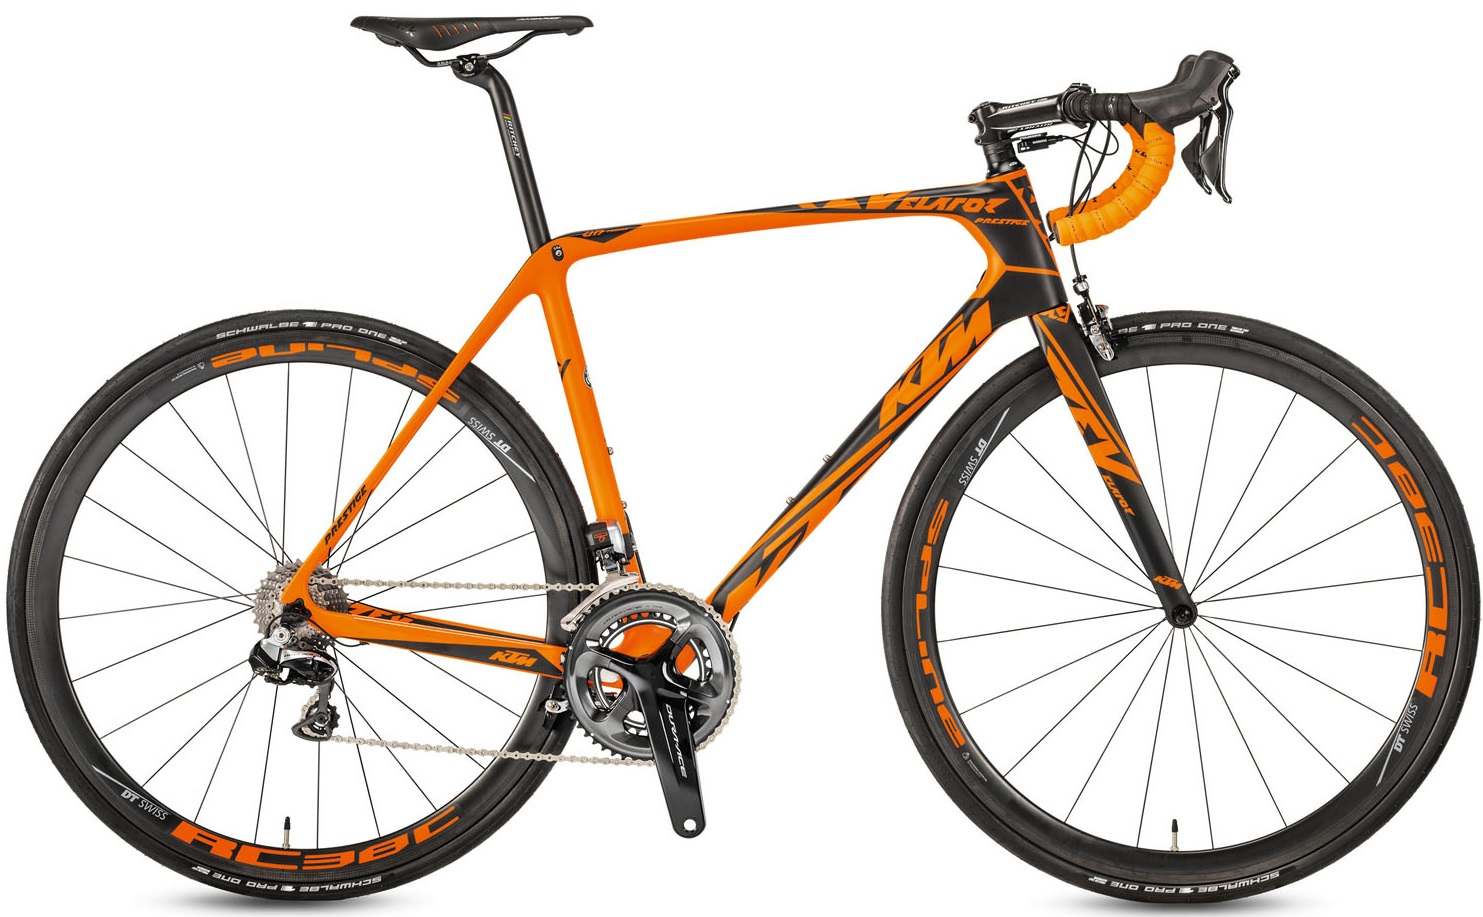 2017 KTM Revelator Prestige Dura Ace Di2 orangeneuroticarnutz2016 Hersh Speed orange